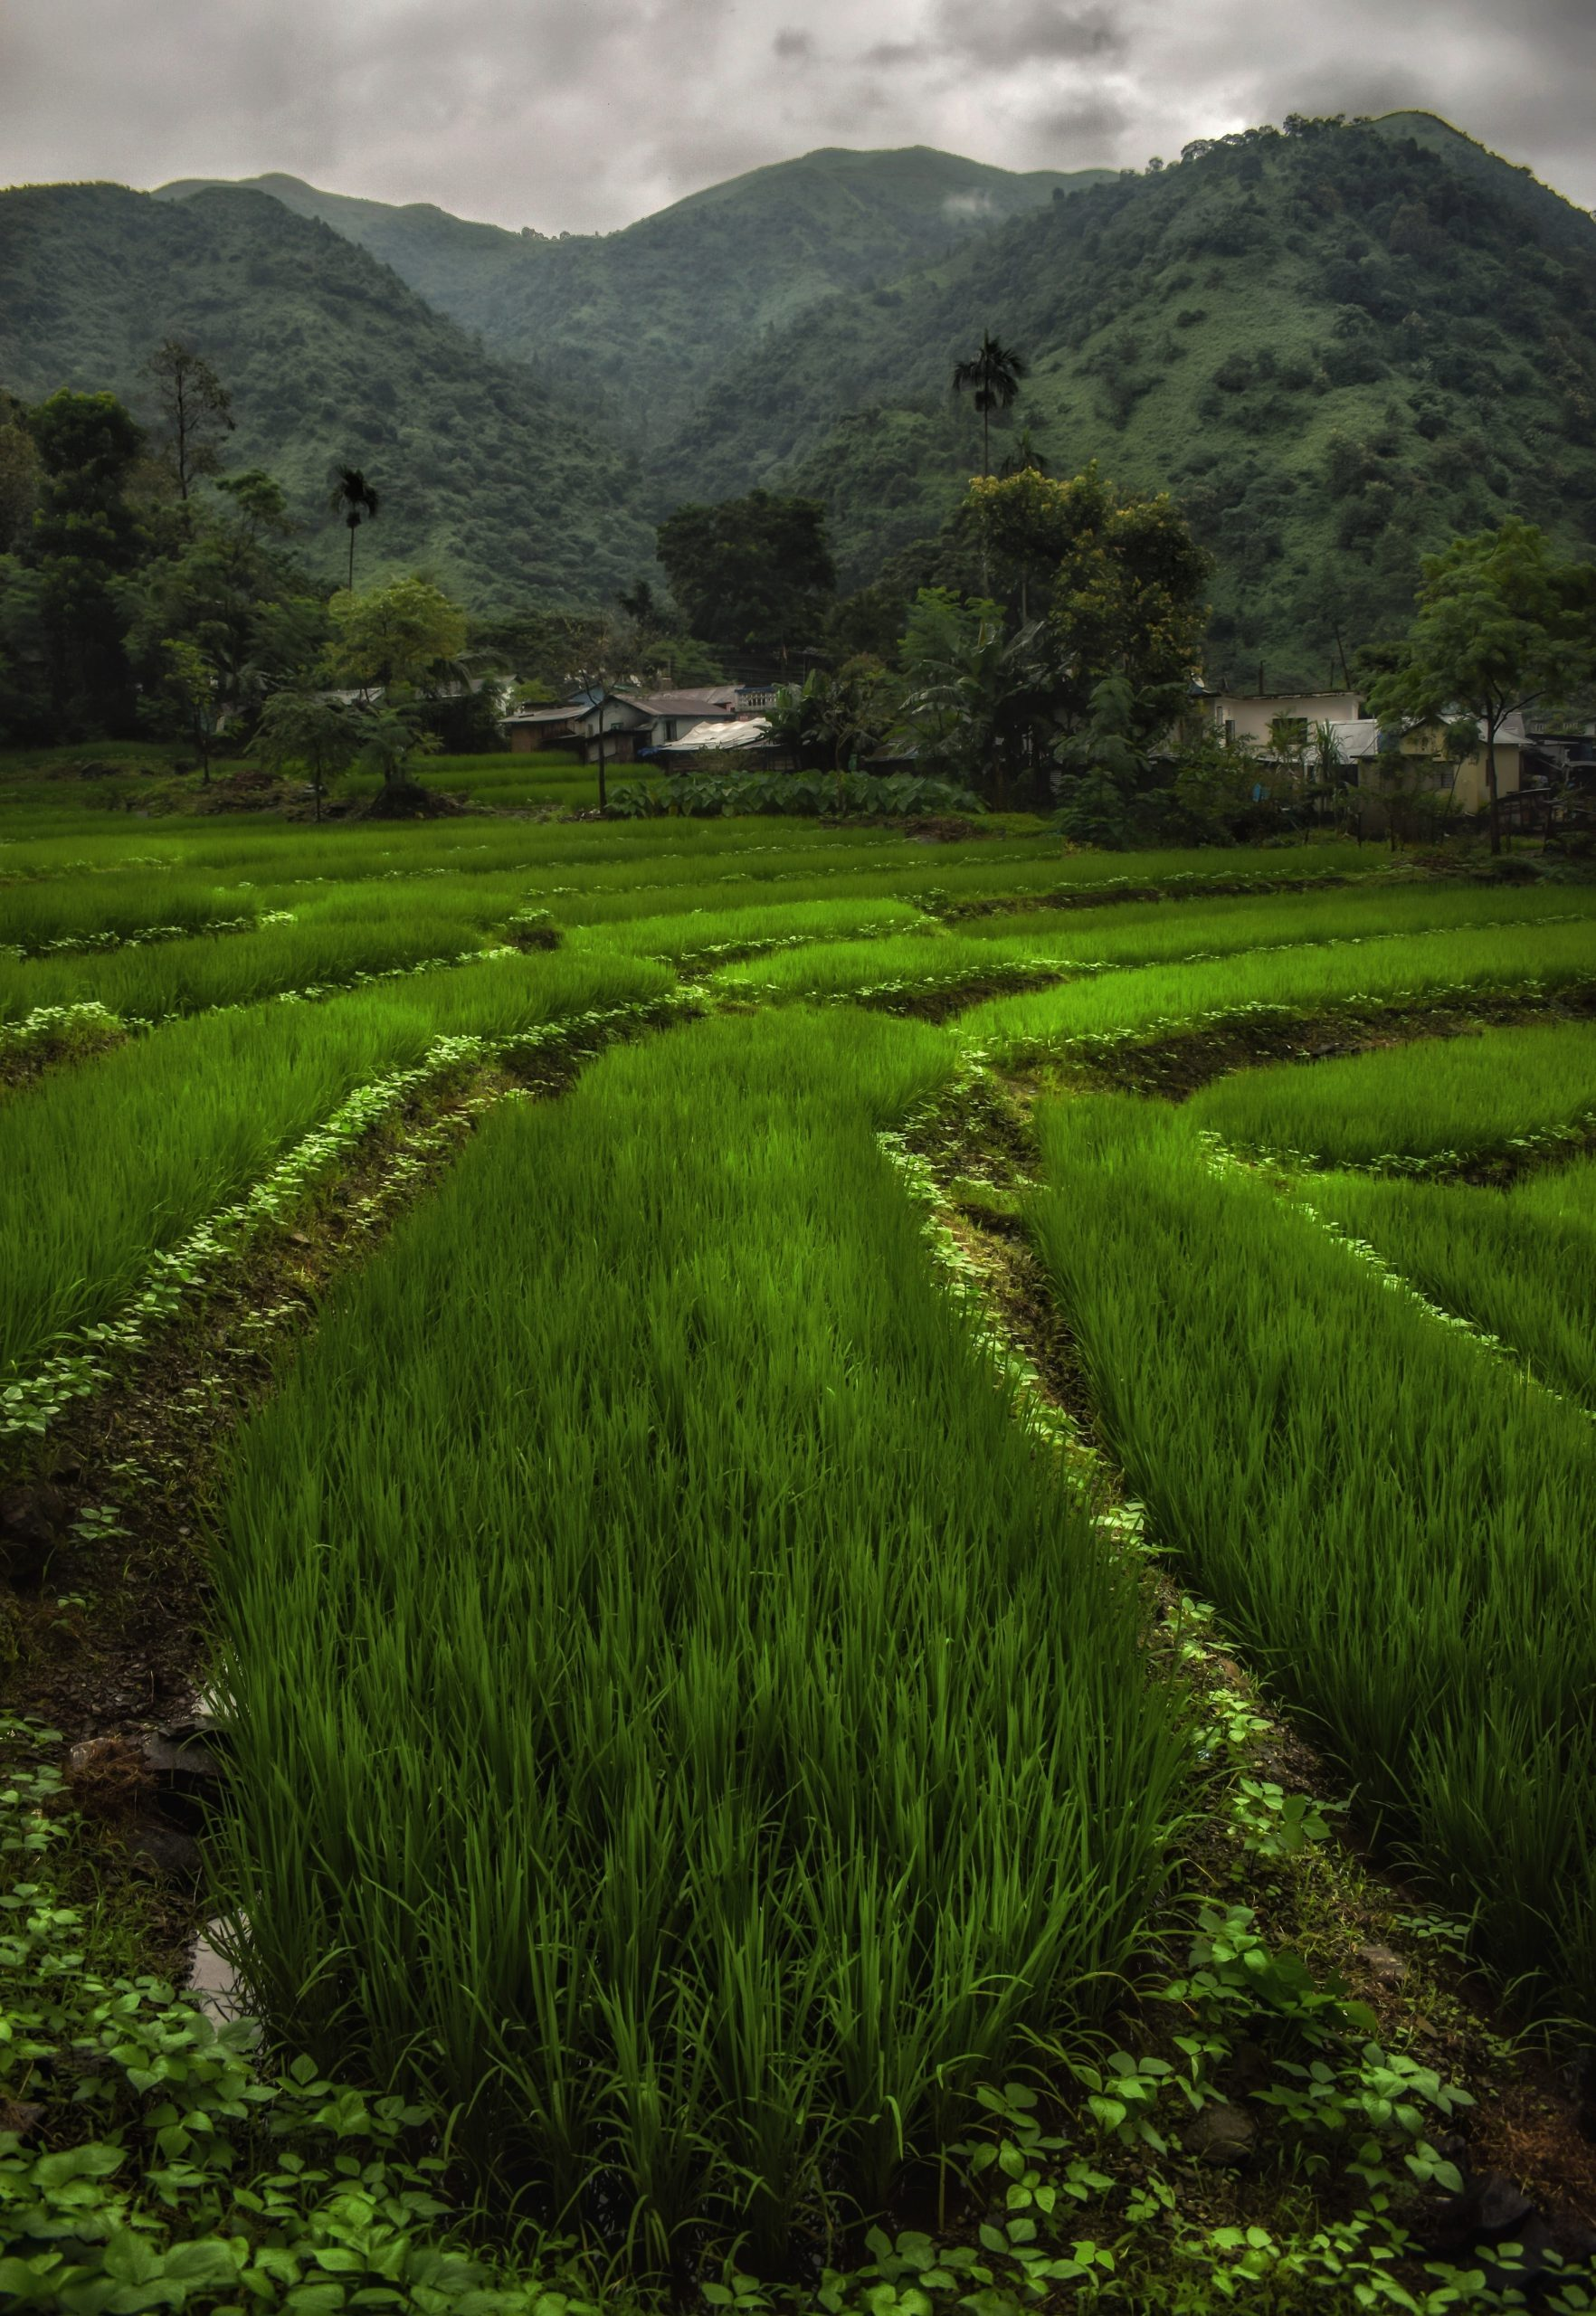 Paddy Field in the Mountain